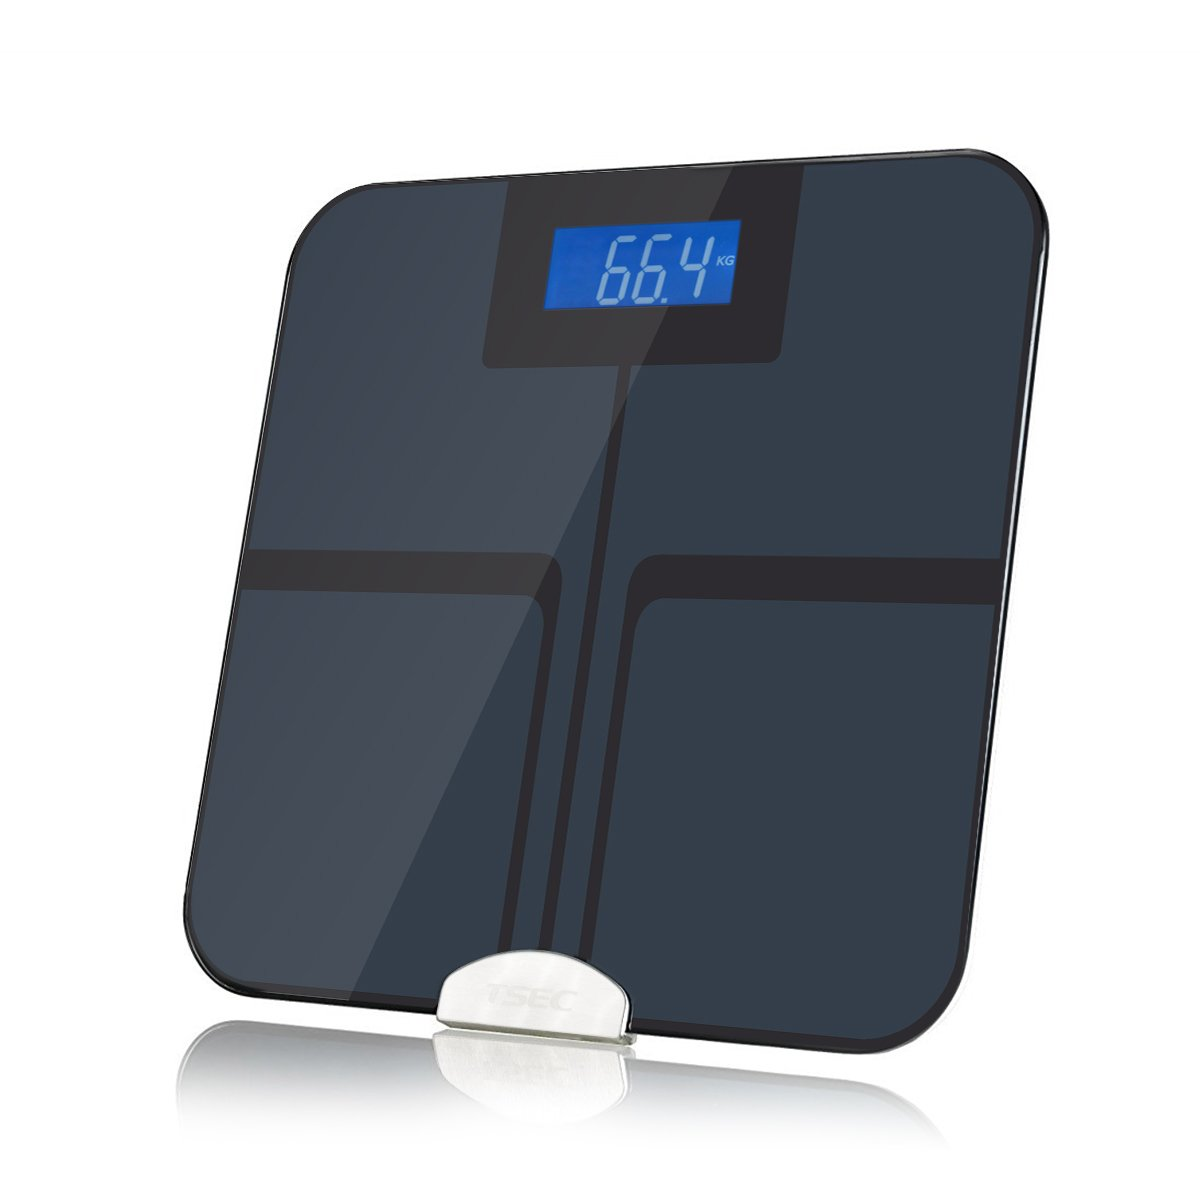 Bluetooth Digital Full Body Weight Scale Smart Electric Bathroom Weight Watcher with Highly Accurate Measurement Including BMI, Body Fat, Muscle Mass, Water, and Bone Mass,Sync with Smart Phone APP